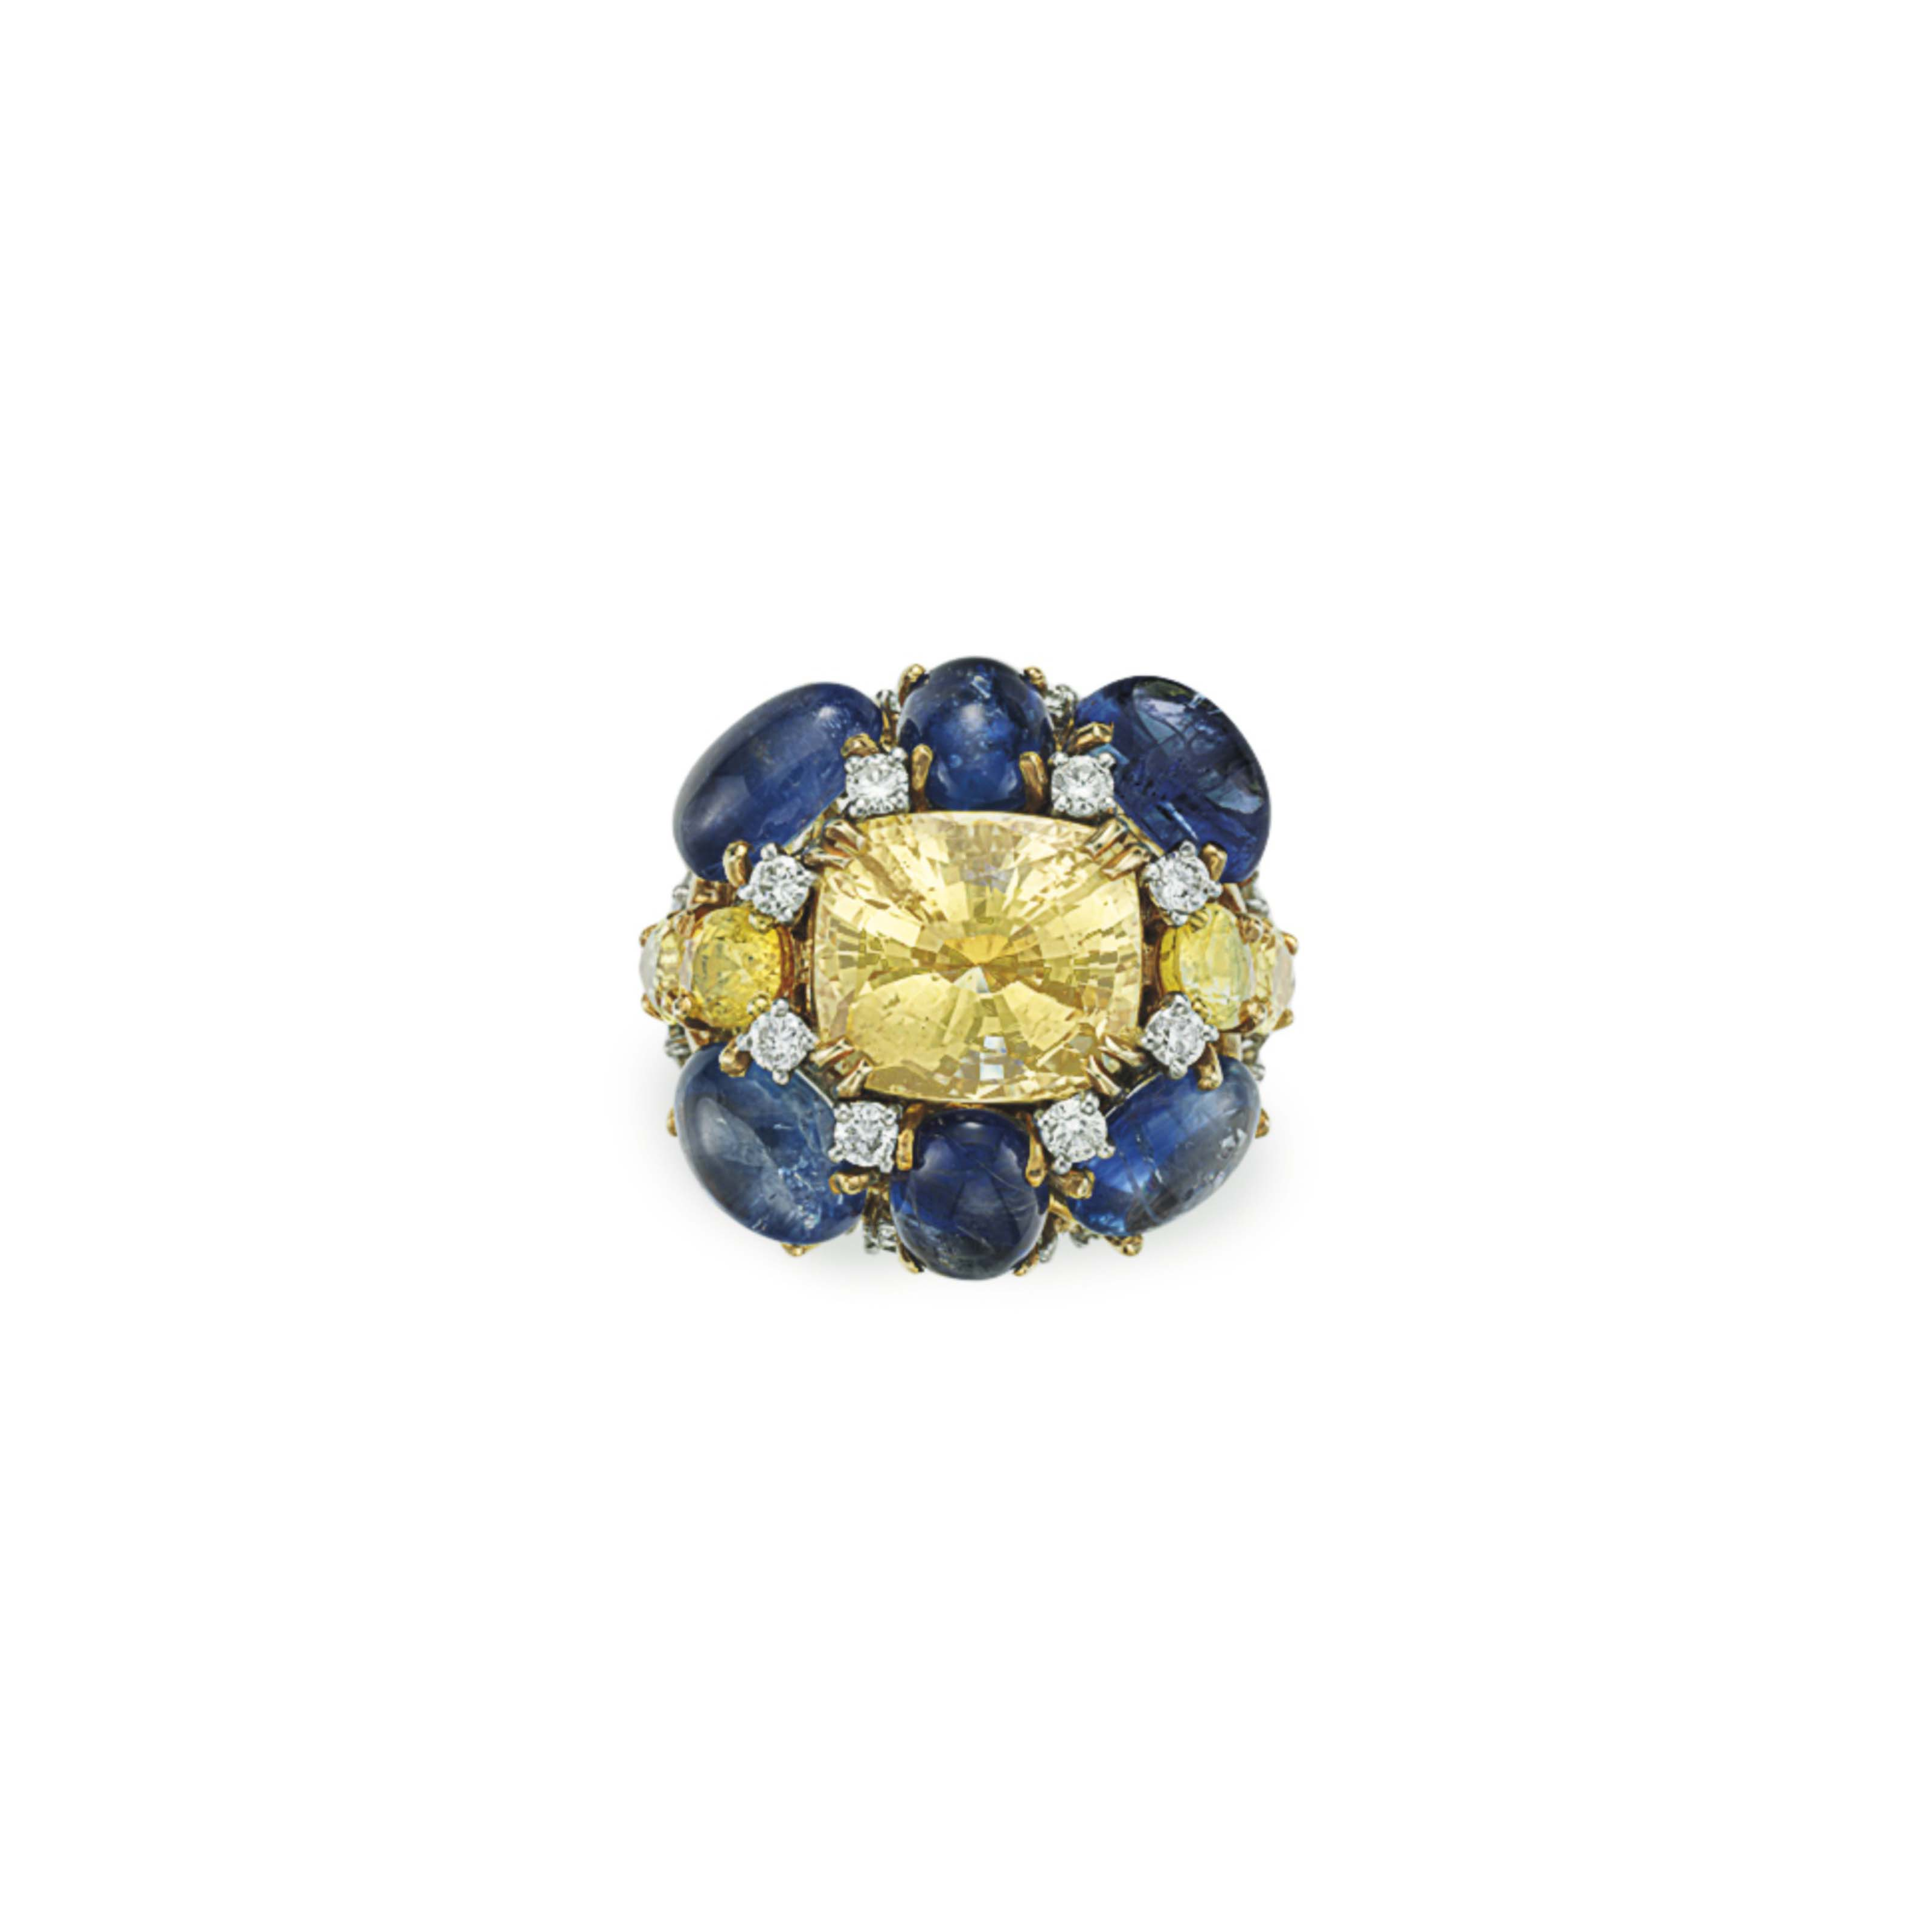 A COLORED SAPPHIRE, SAPPHIRE AND DIAMOND RING, BY DAVID WEBB